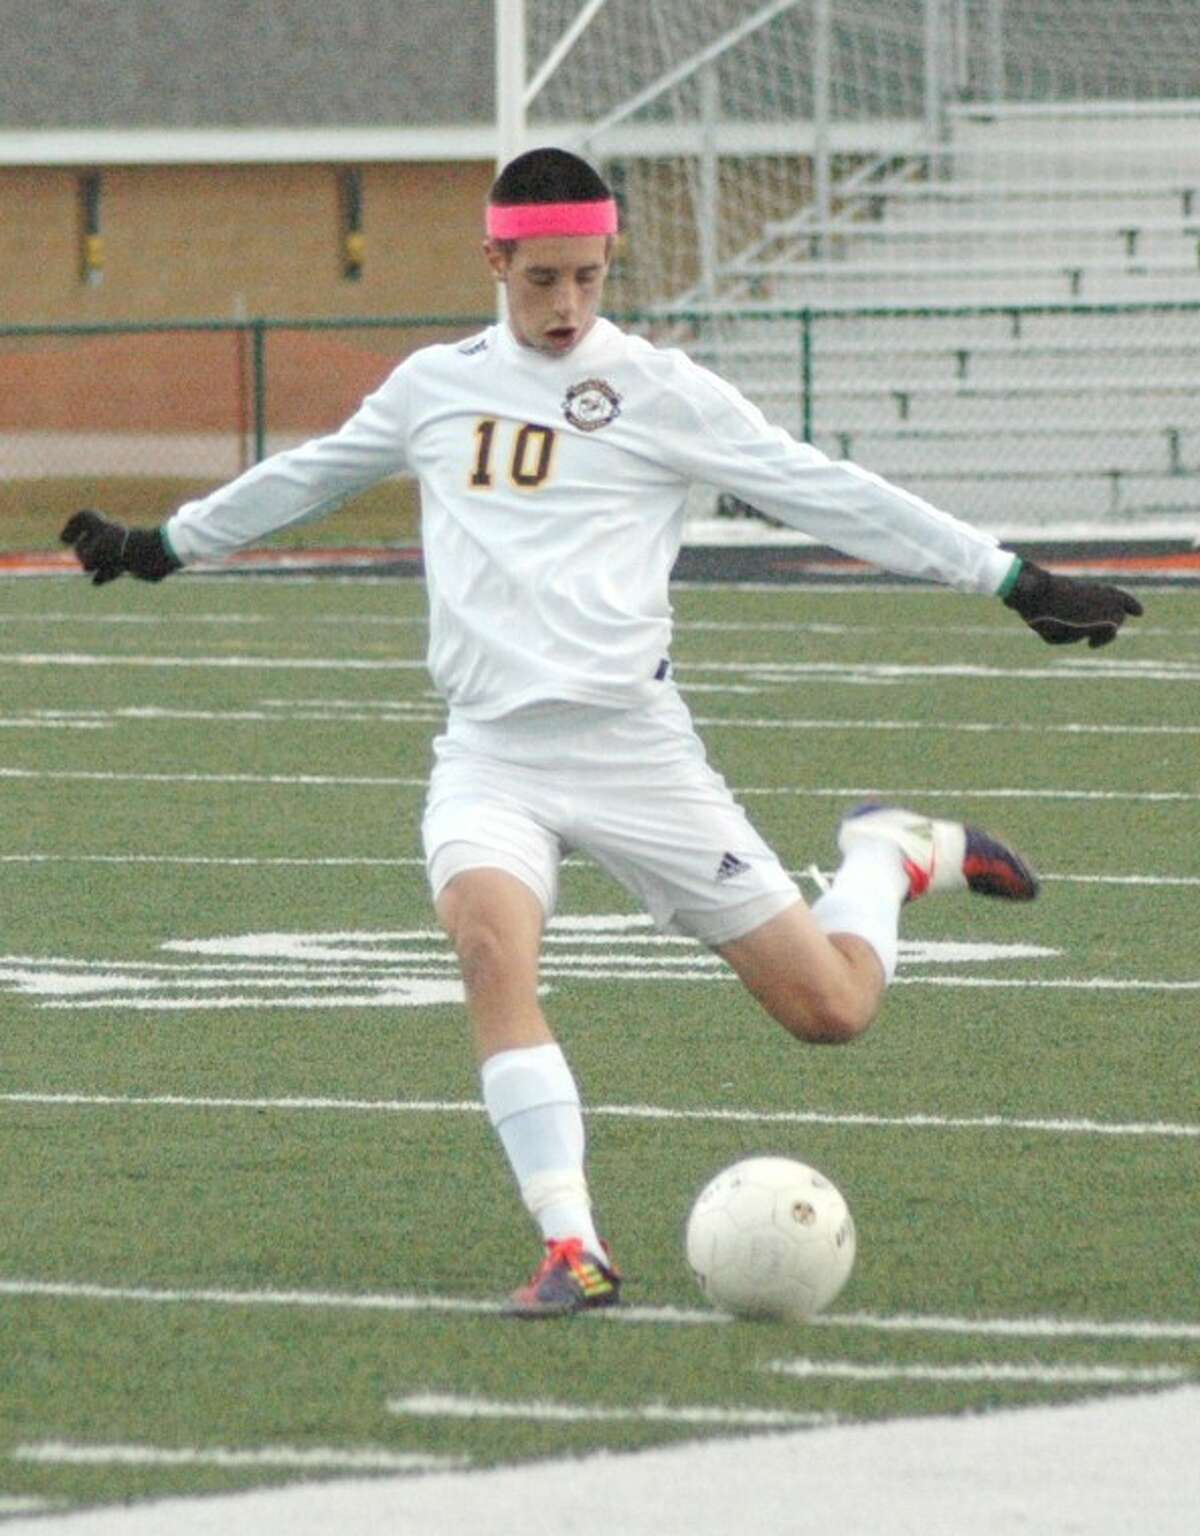 Metro's Matt Rankin clears a ball on defense Wednesday against Columbia. The Eagles dismissed the Knights from the postseason with a 2-0 victory.